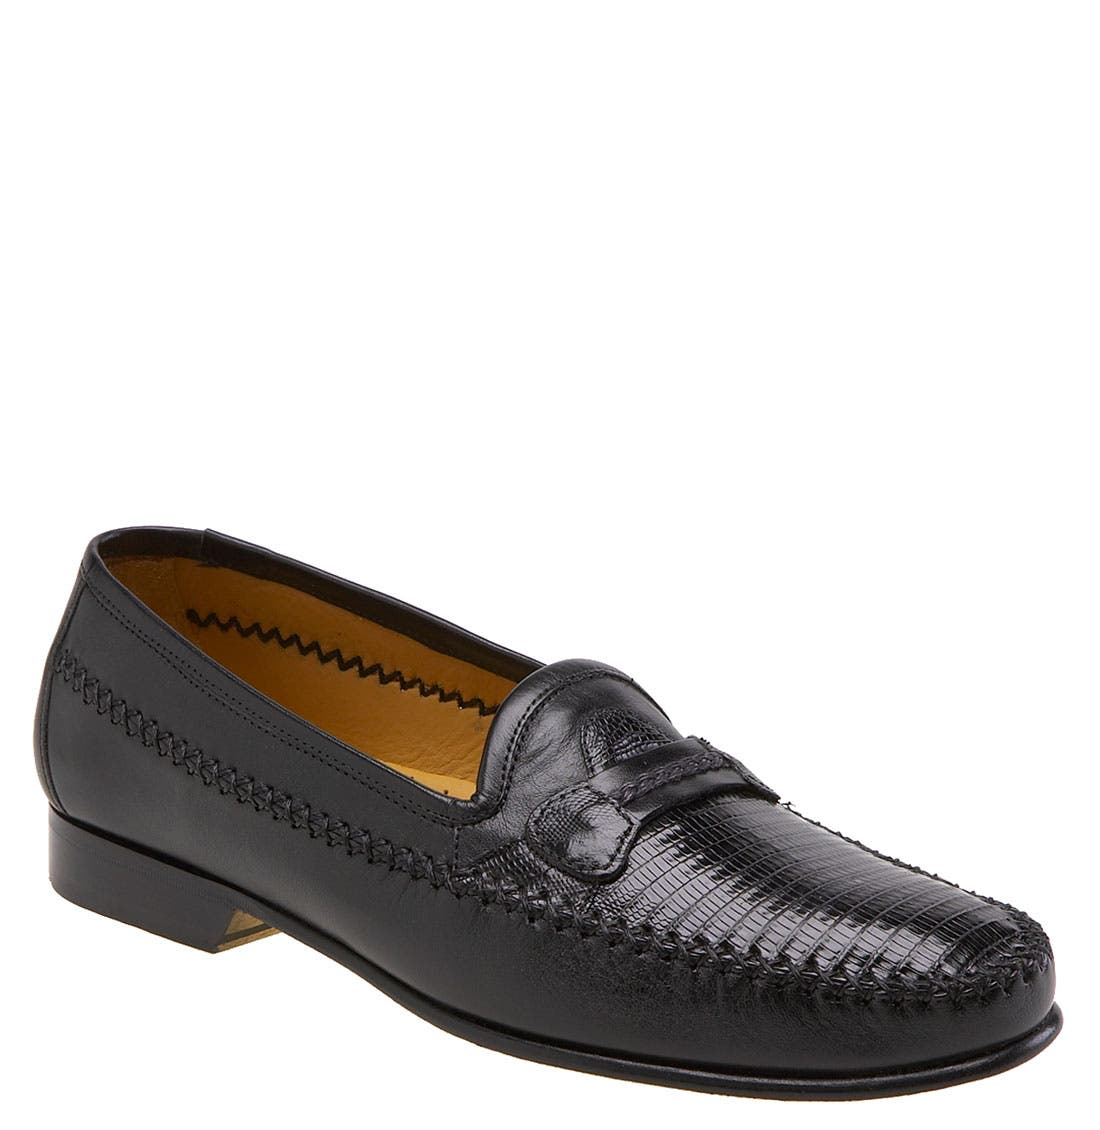 Alternate Image 1 Selected - Mezlan 'Regan' Loafer